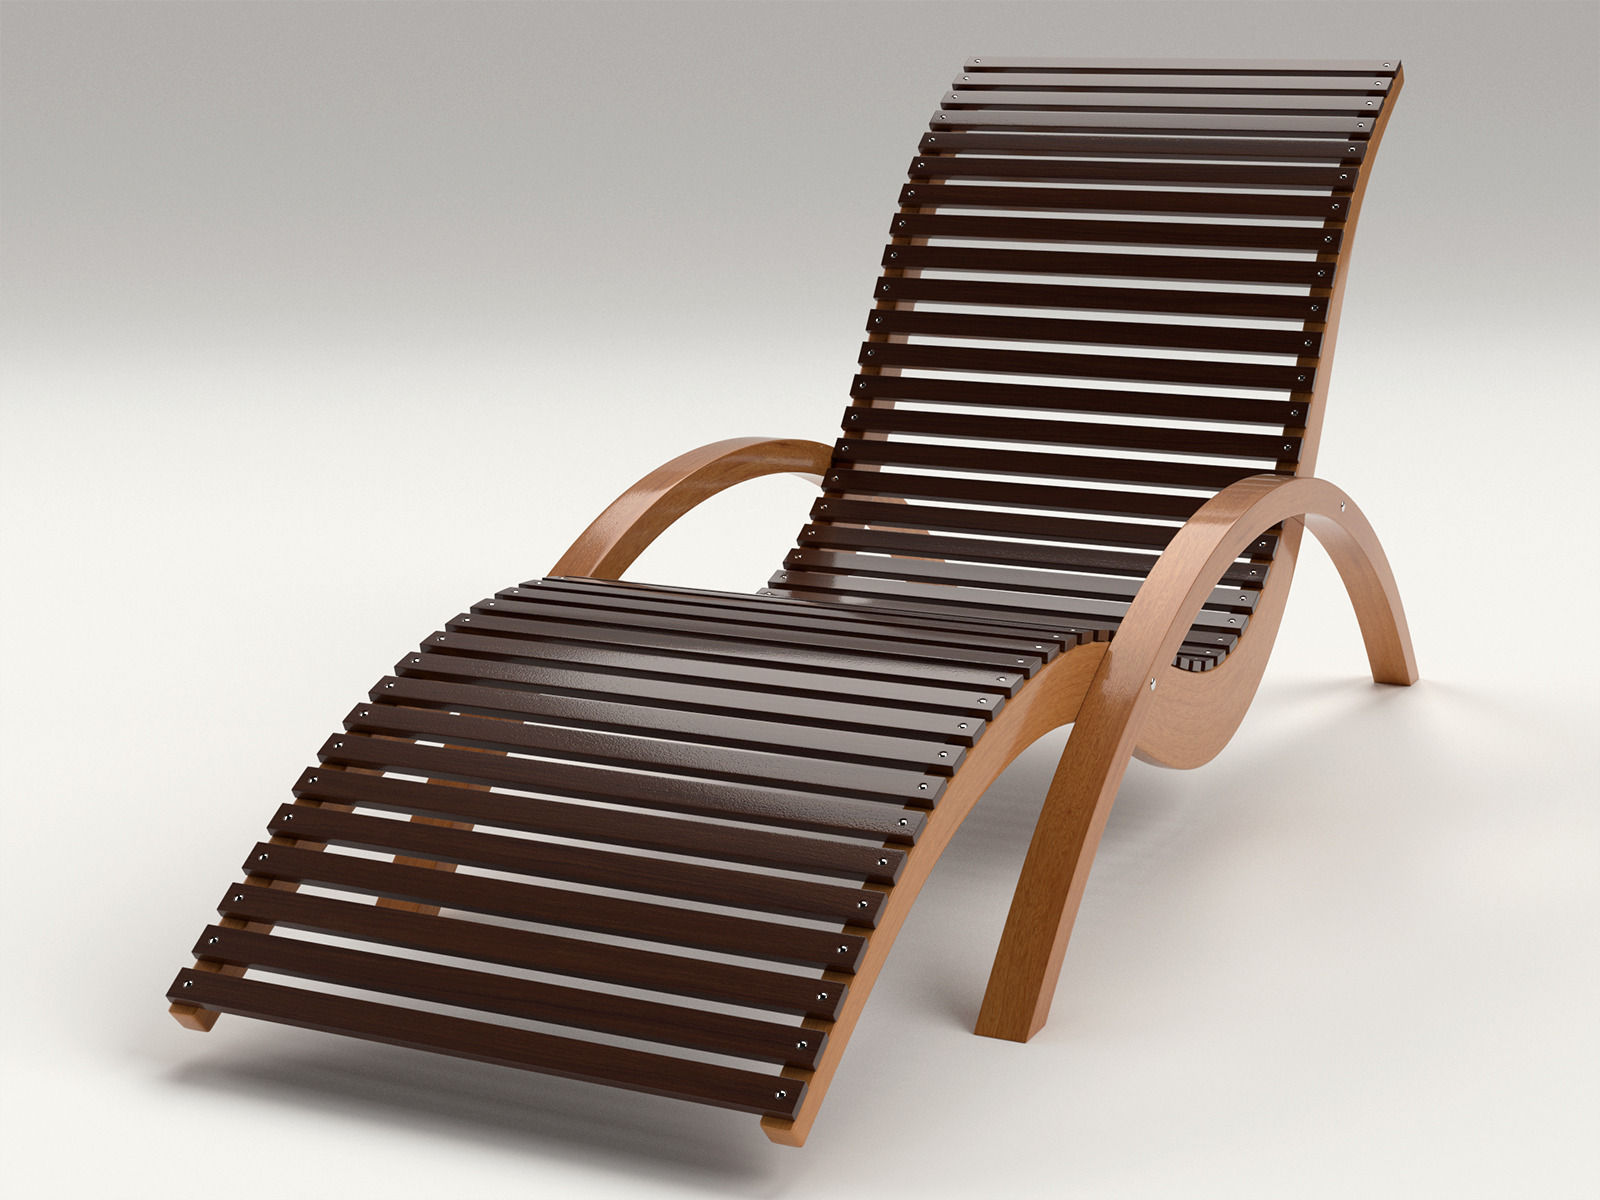 Lounge Chair Outdoor Wood Patio Deck 3D Model OBJ MTL